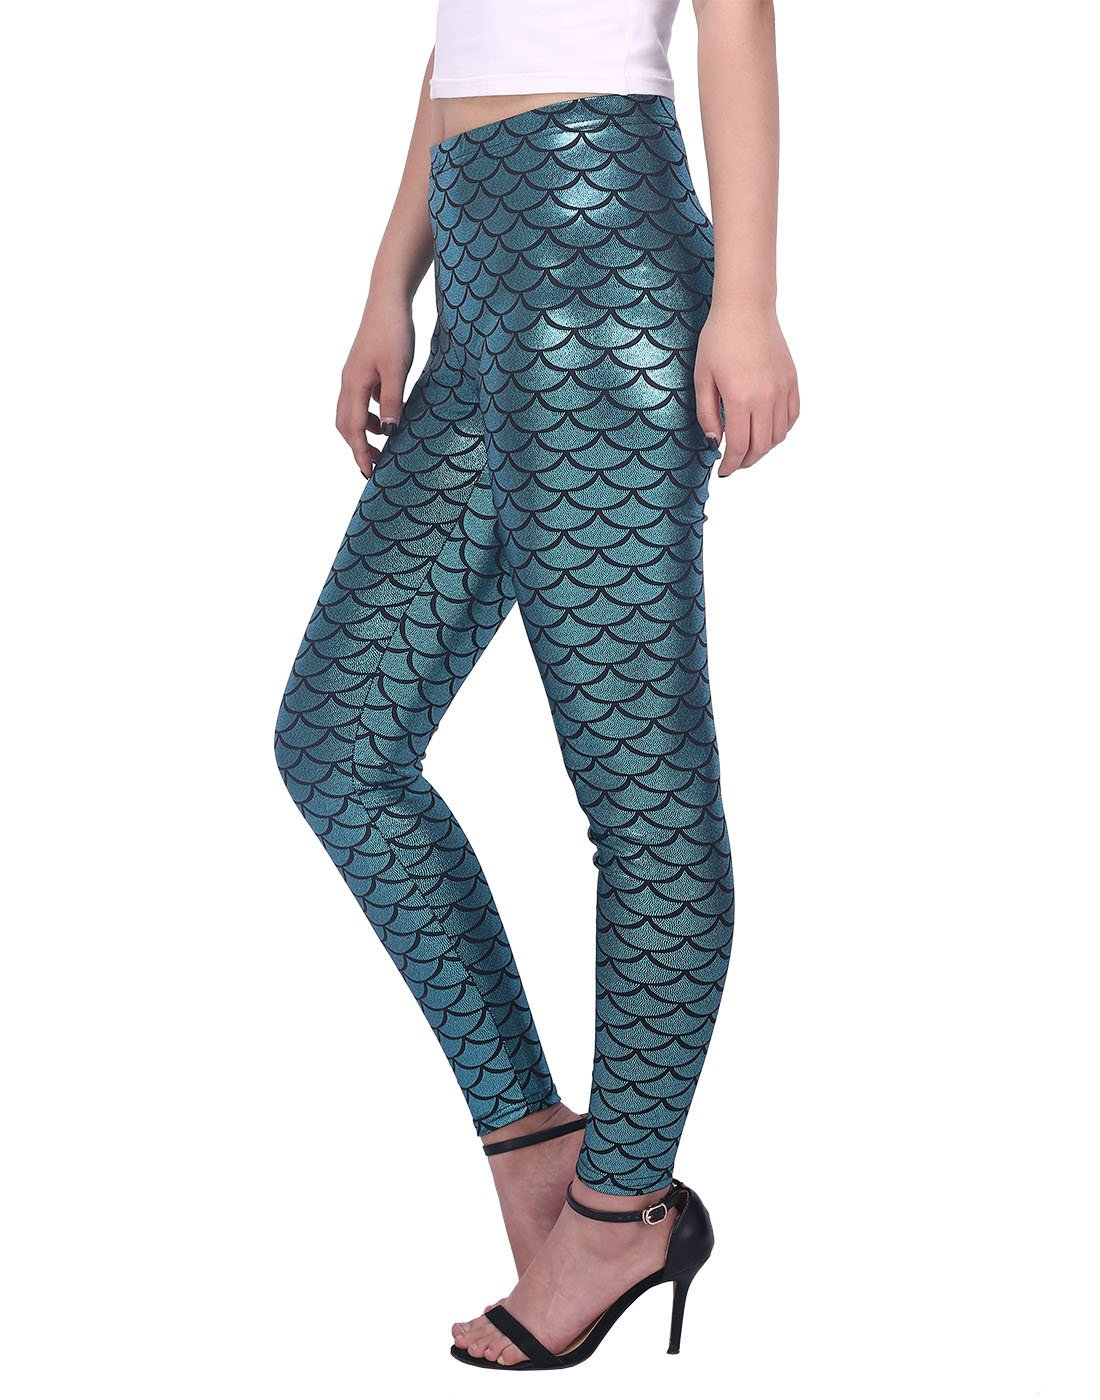 HDE Womens Shiny Leggings Mermaid Metallic Glitter Fish Scale Stretch Pants S-XL (Teal, X-Large)